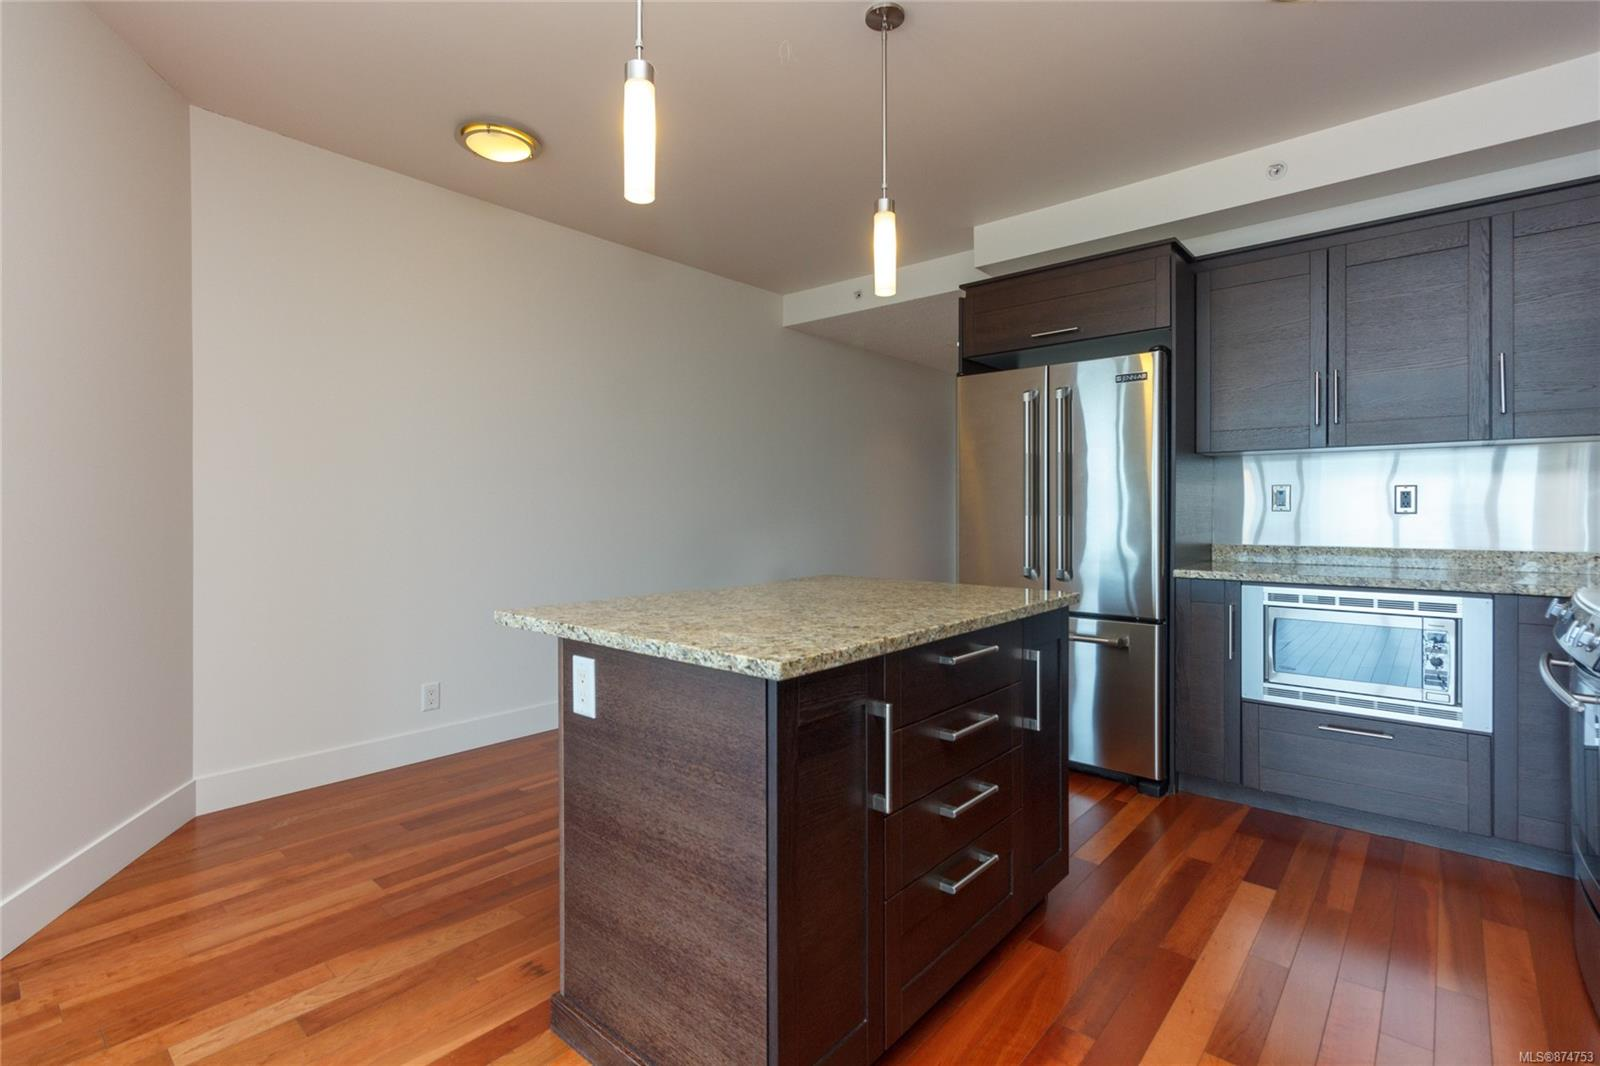 Photo 10 at S906 - 737 Humboldt Street, Downtown, Victoria